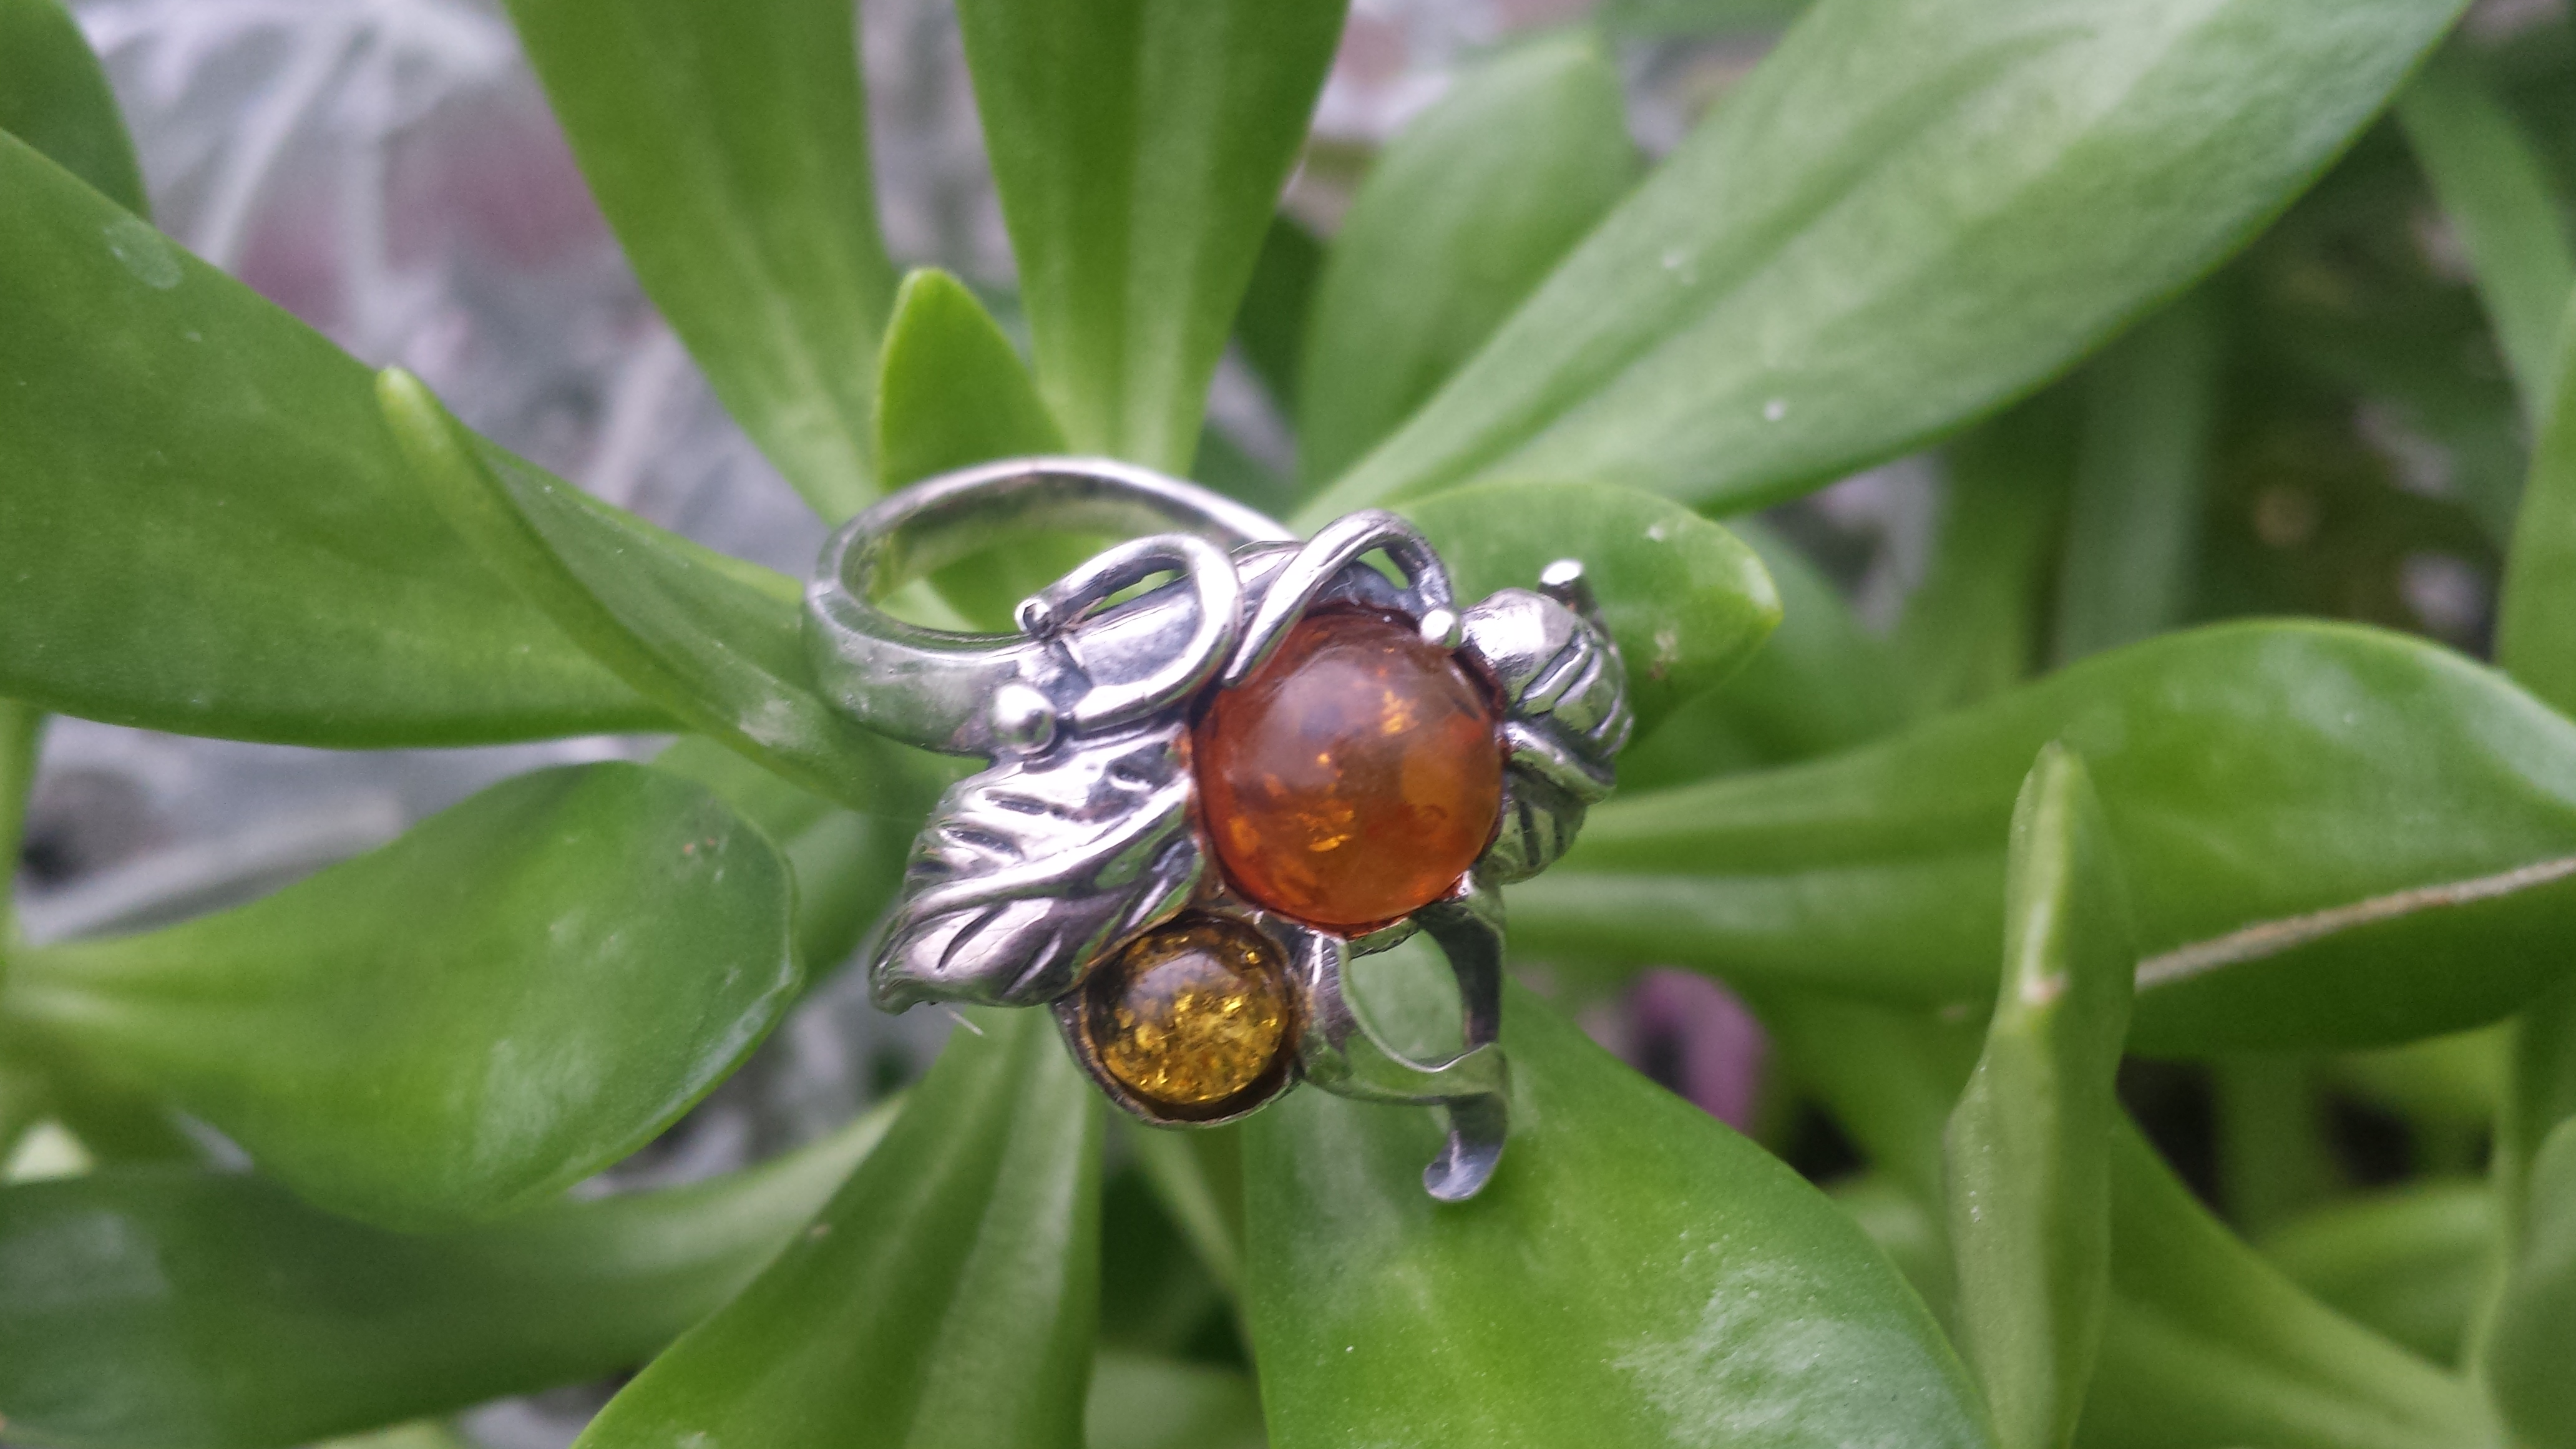 GENUINE AMBER RING WITH SOLID 925 STERLING SILVER Size6 6.5G